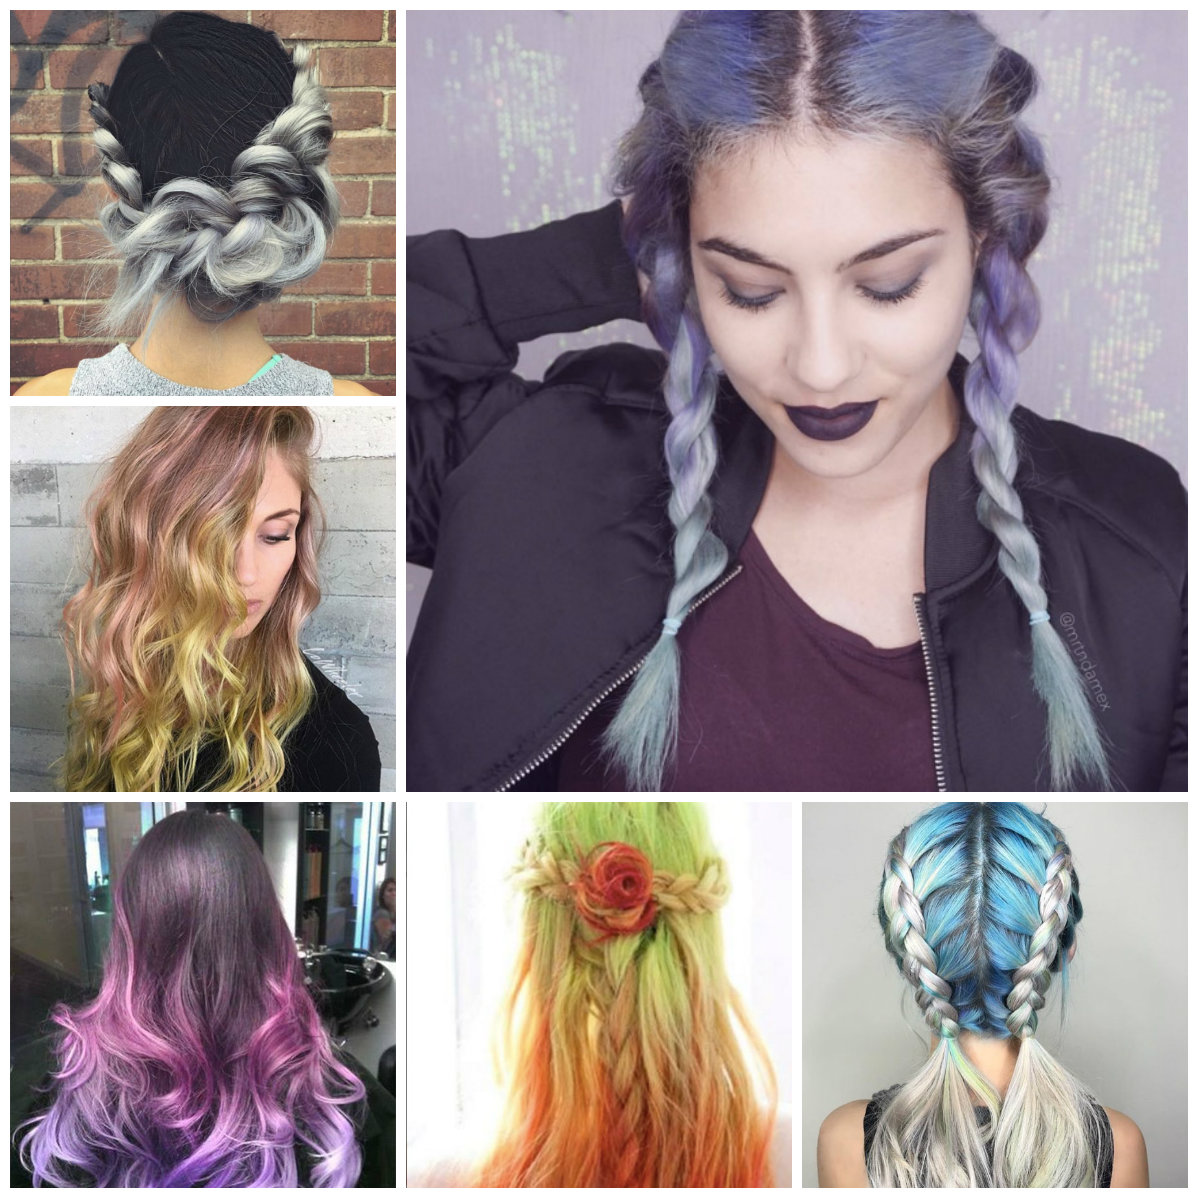 hair highlights | 2017 haircuts, hairstyles and hair colors